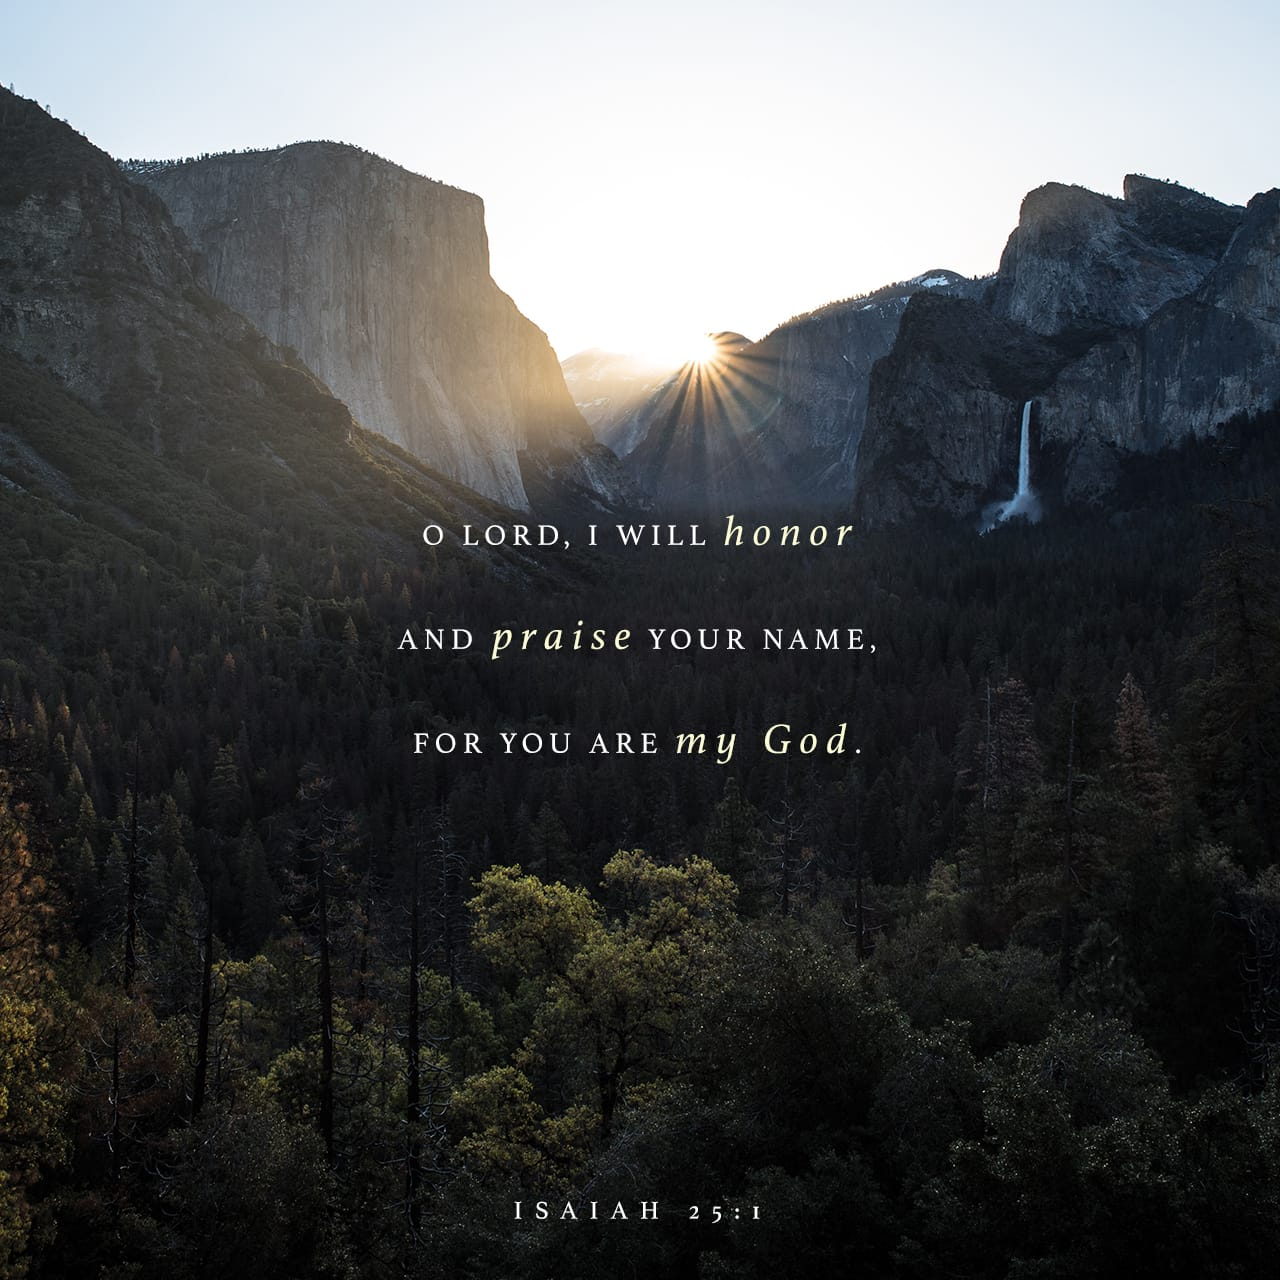 Isaiah 25:1 O LORD, You are my God; I will exalt You, I will give thanks to Your name; For You have worked wonders, Plans formed long ago, with perfect faithfulness.